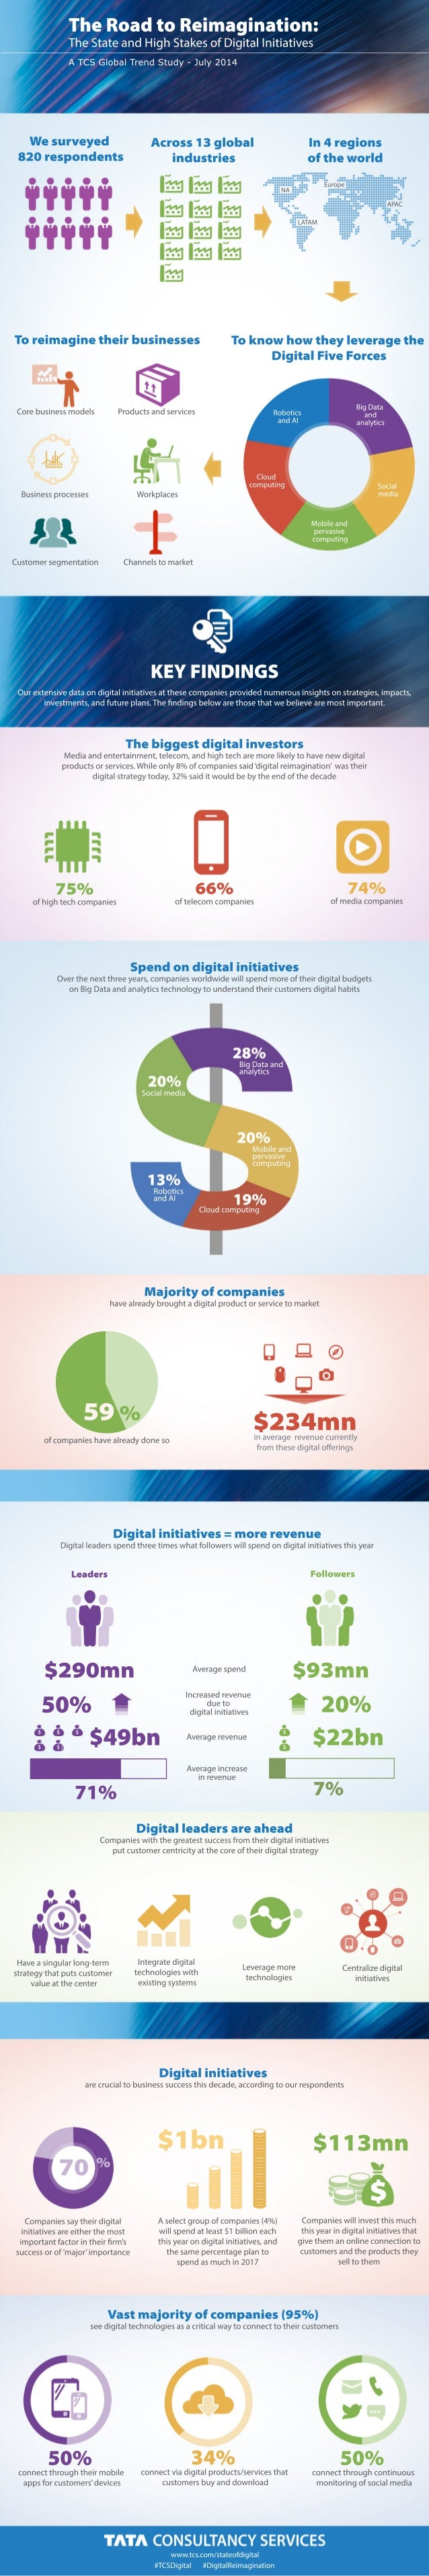 Infographic: The Road to Reimagination: The State and High Stakes of Digital Initiatives